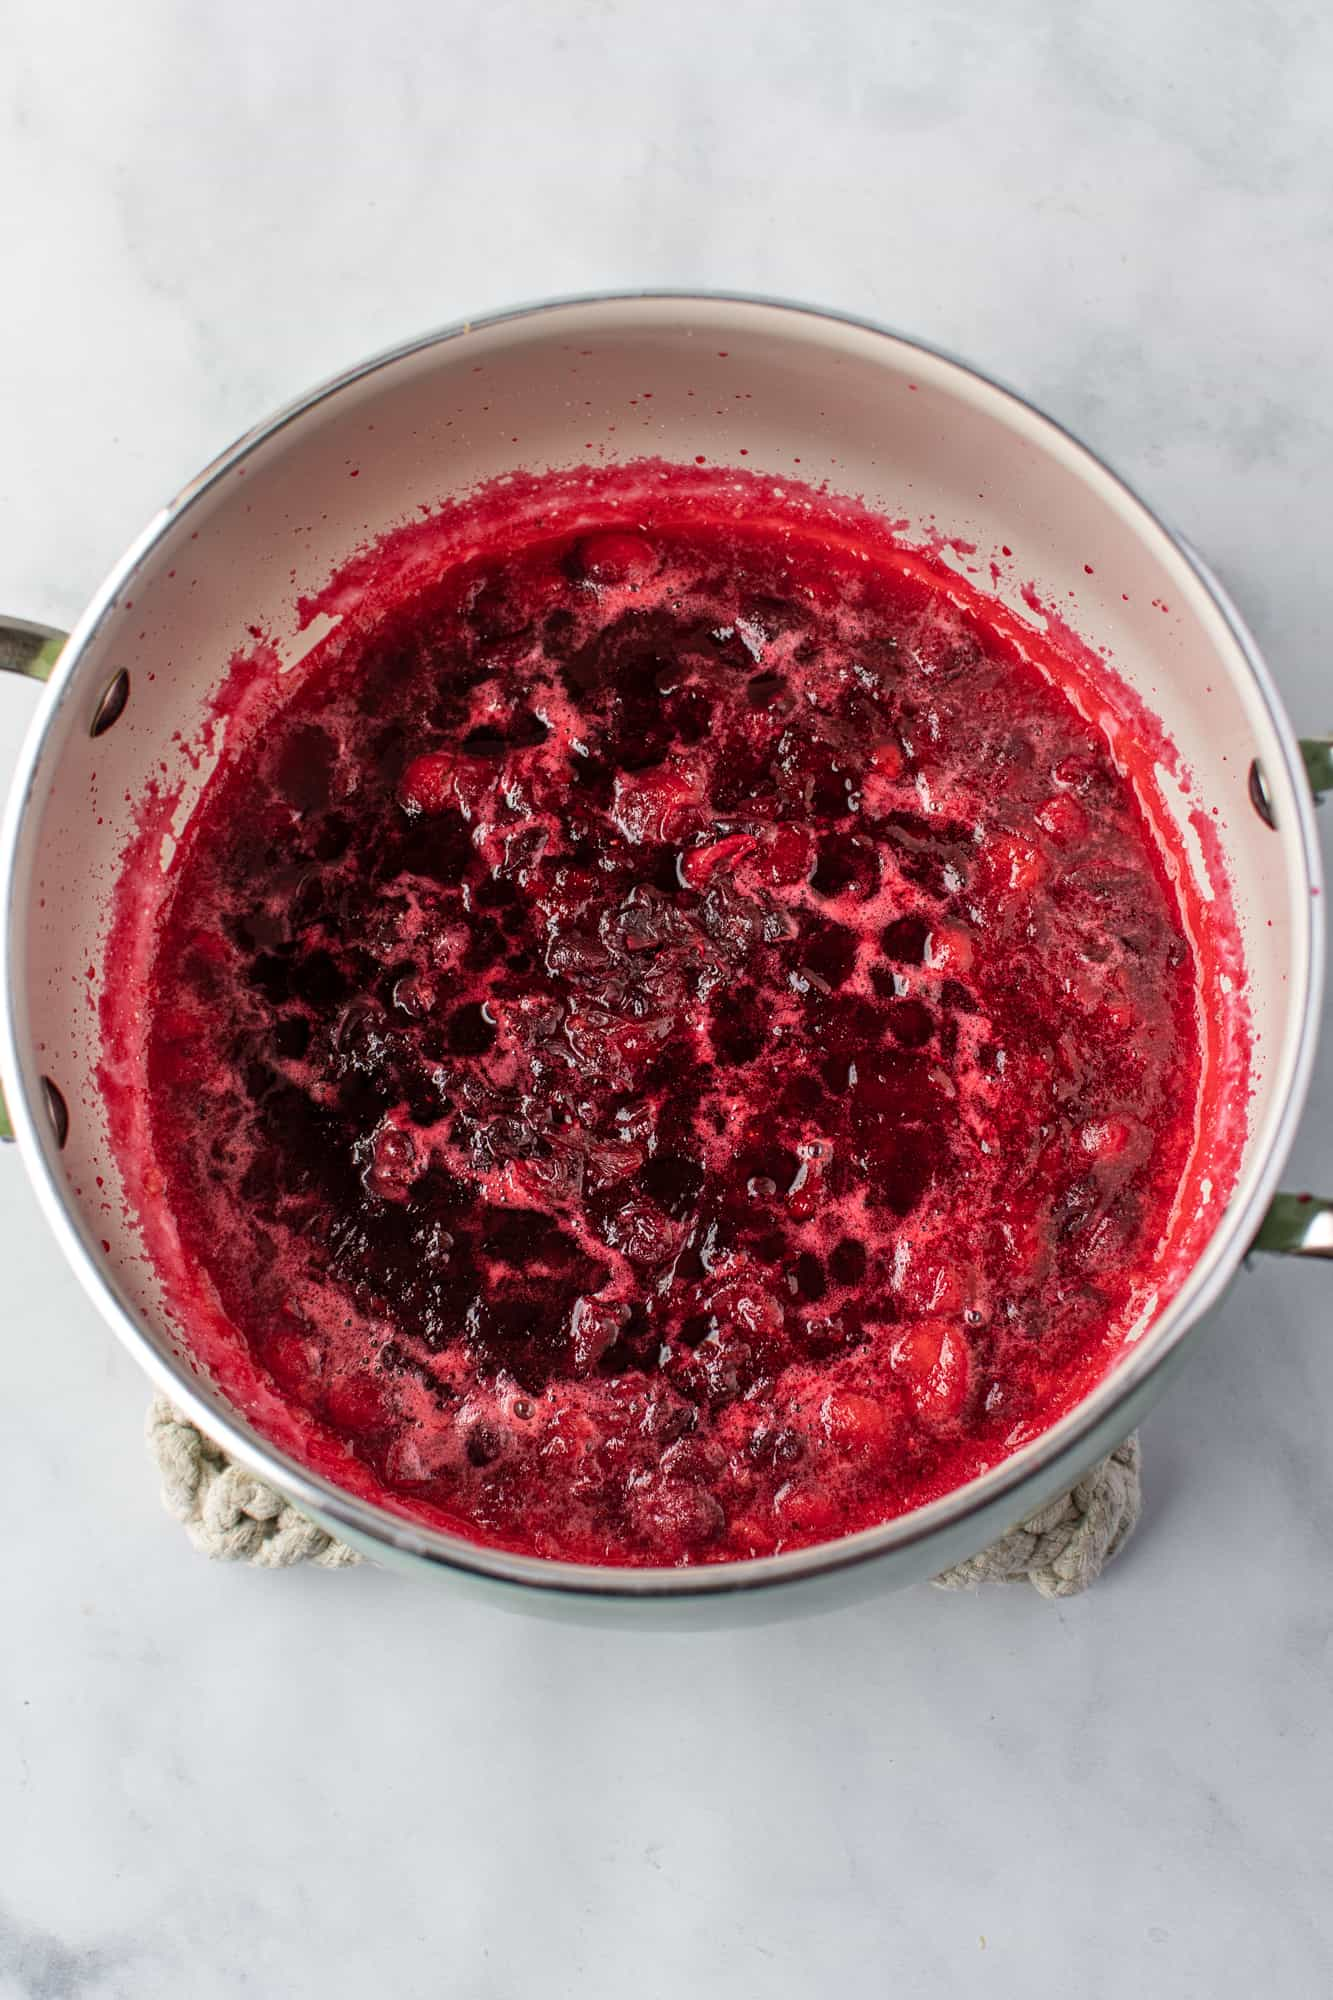 crushed cranberries in a silver sauce pan.